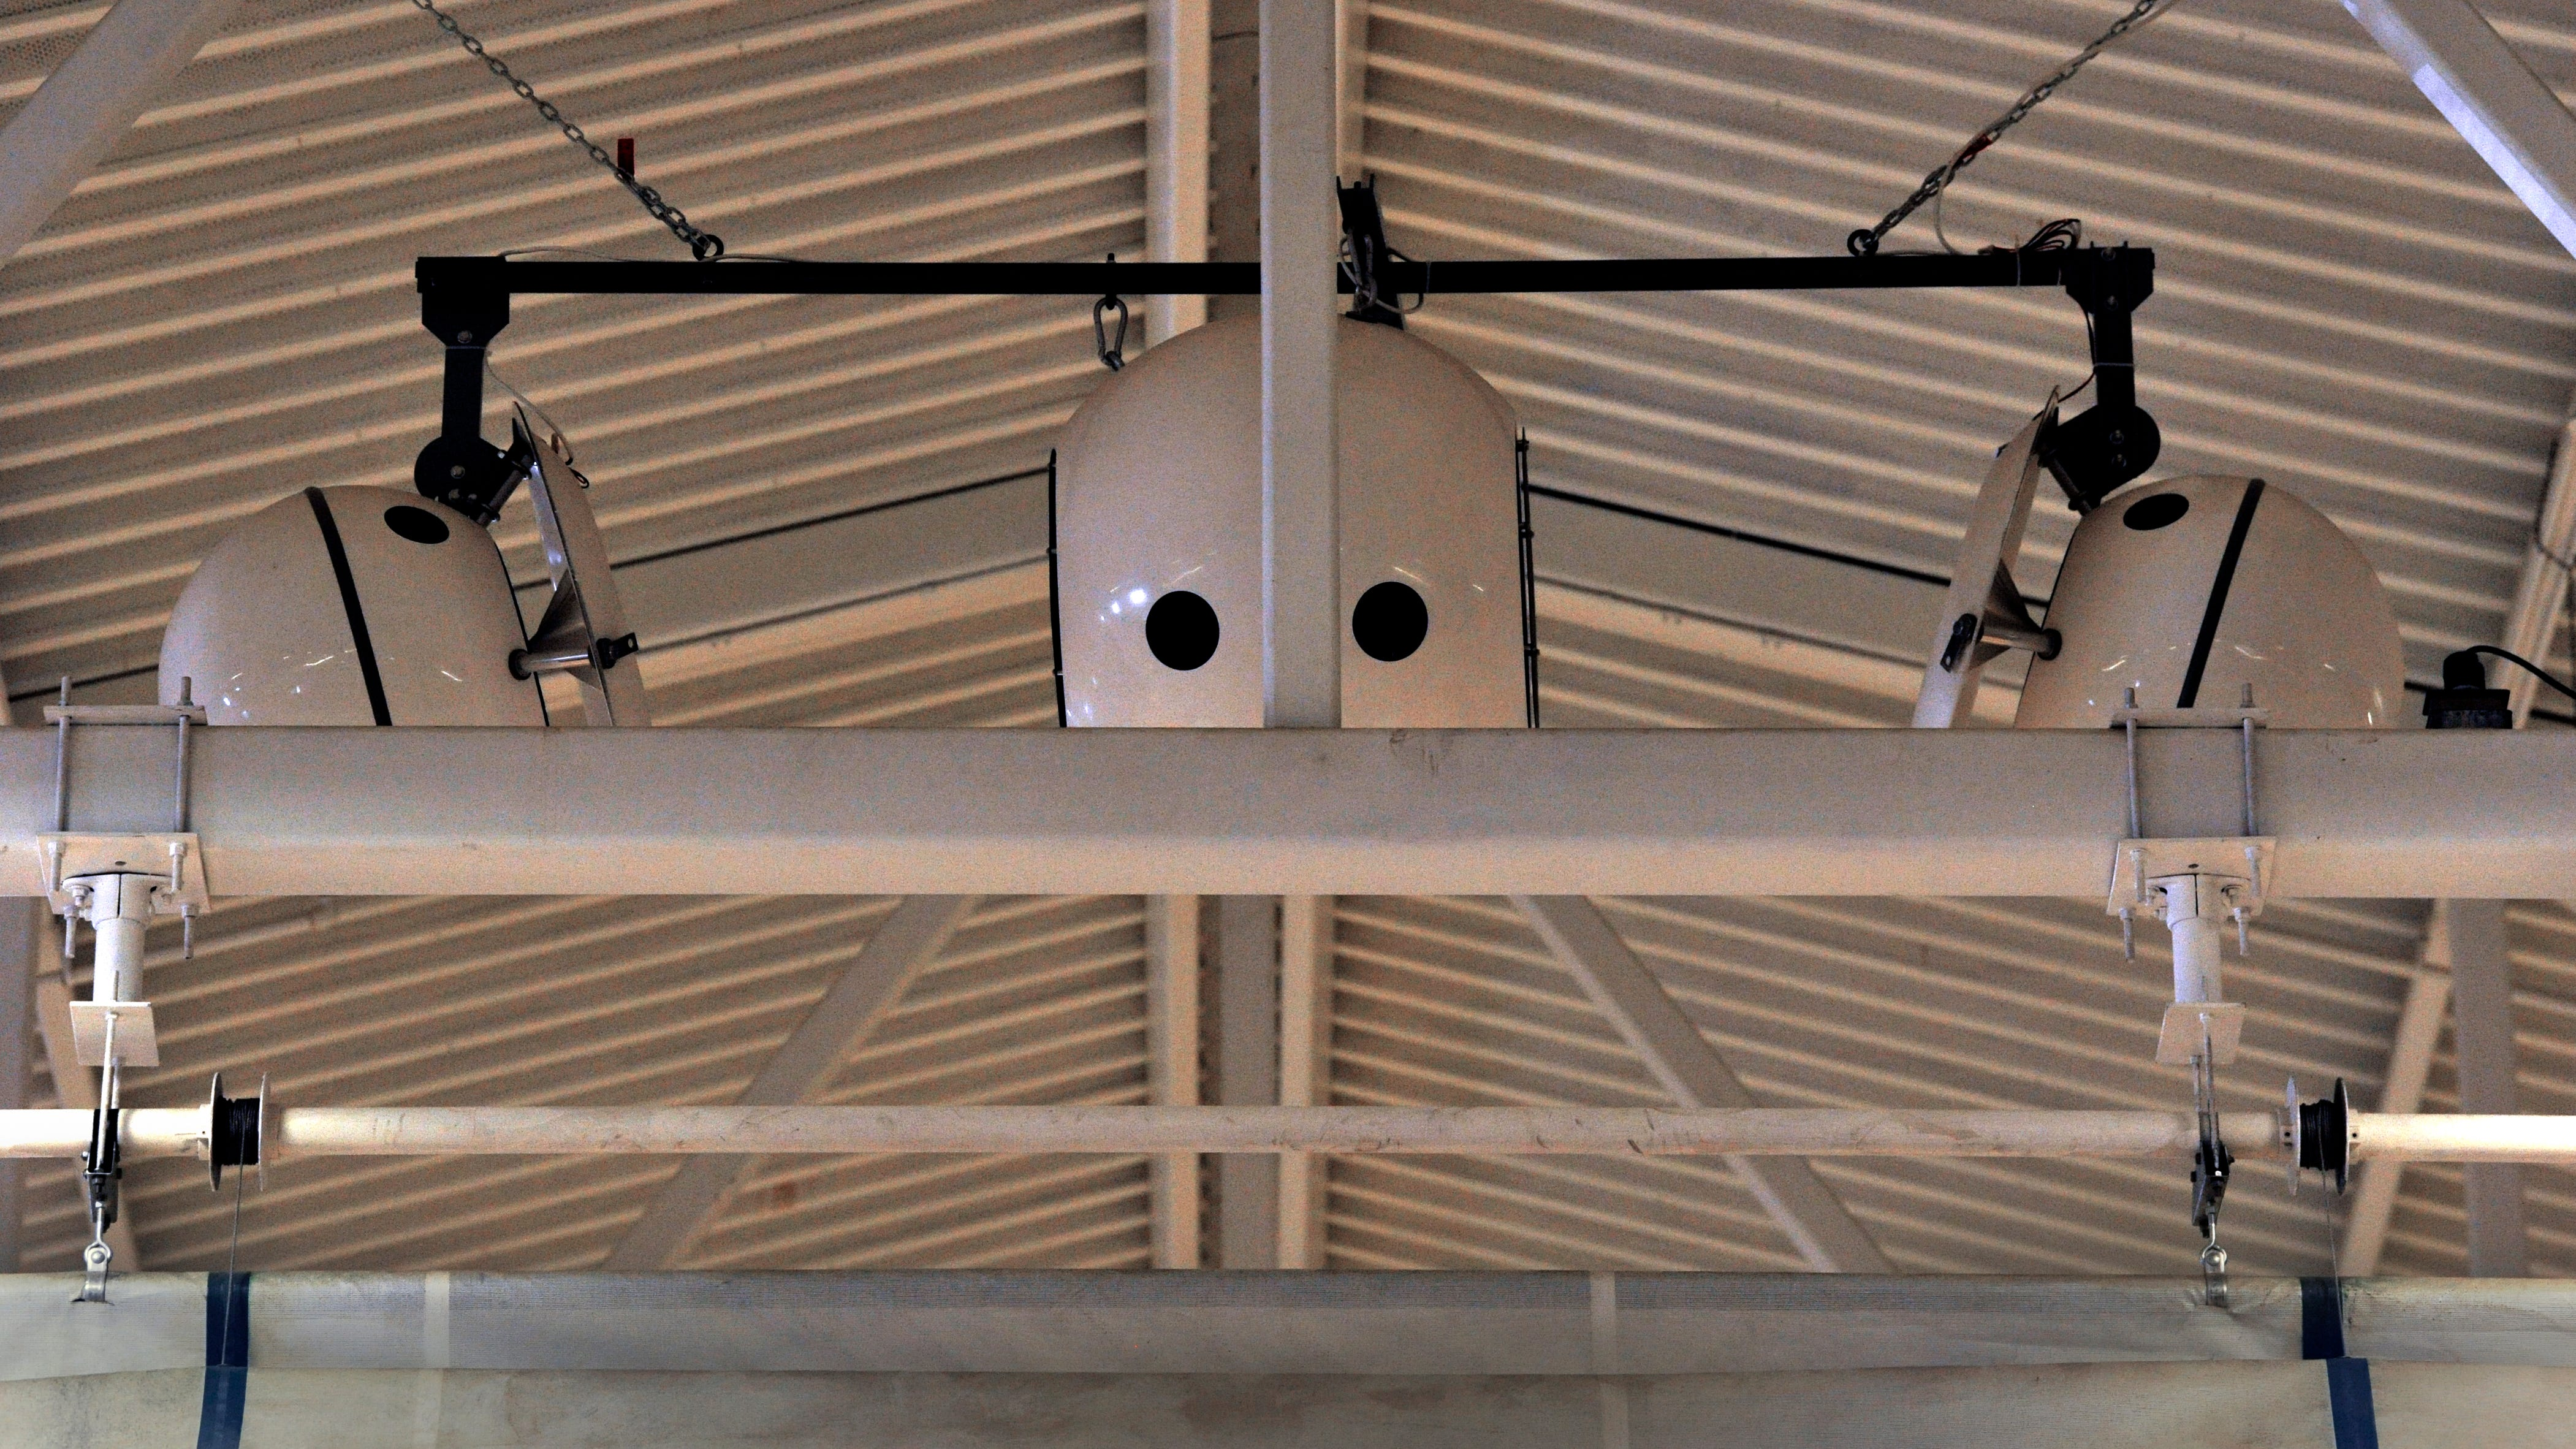 """Equipment hanging from the ceiling of the gymnasium at TSTC Sweetwater was reminiscent of the robot from """"The Iron Giant May 26, 2018. The devices are actually speakers, the """"nose"""" being one of the supports for the ceiling."""